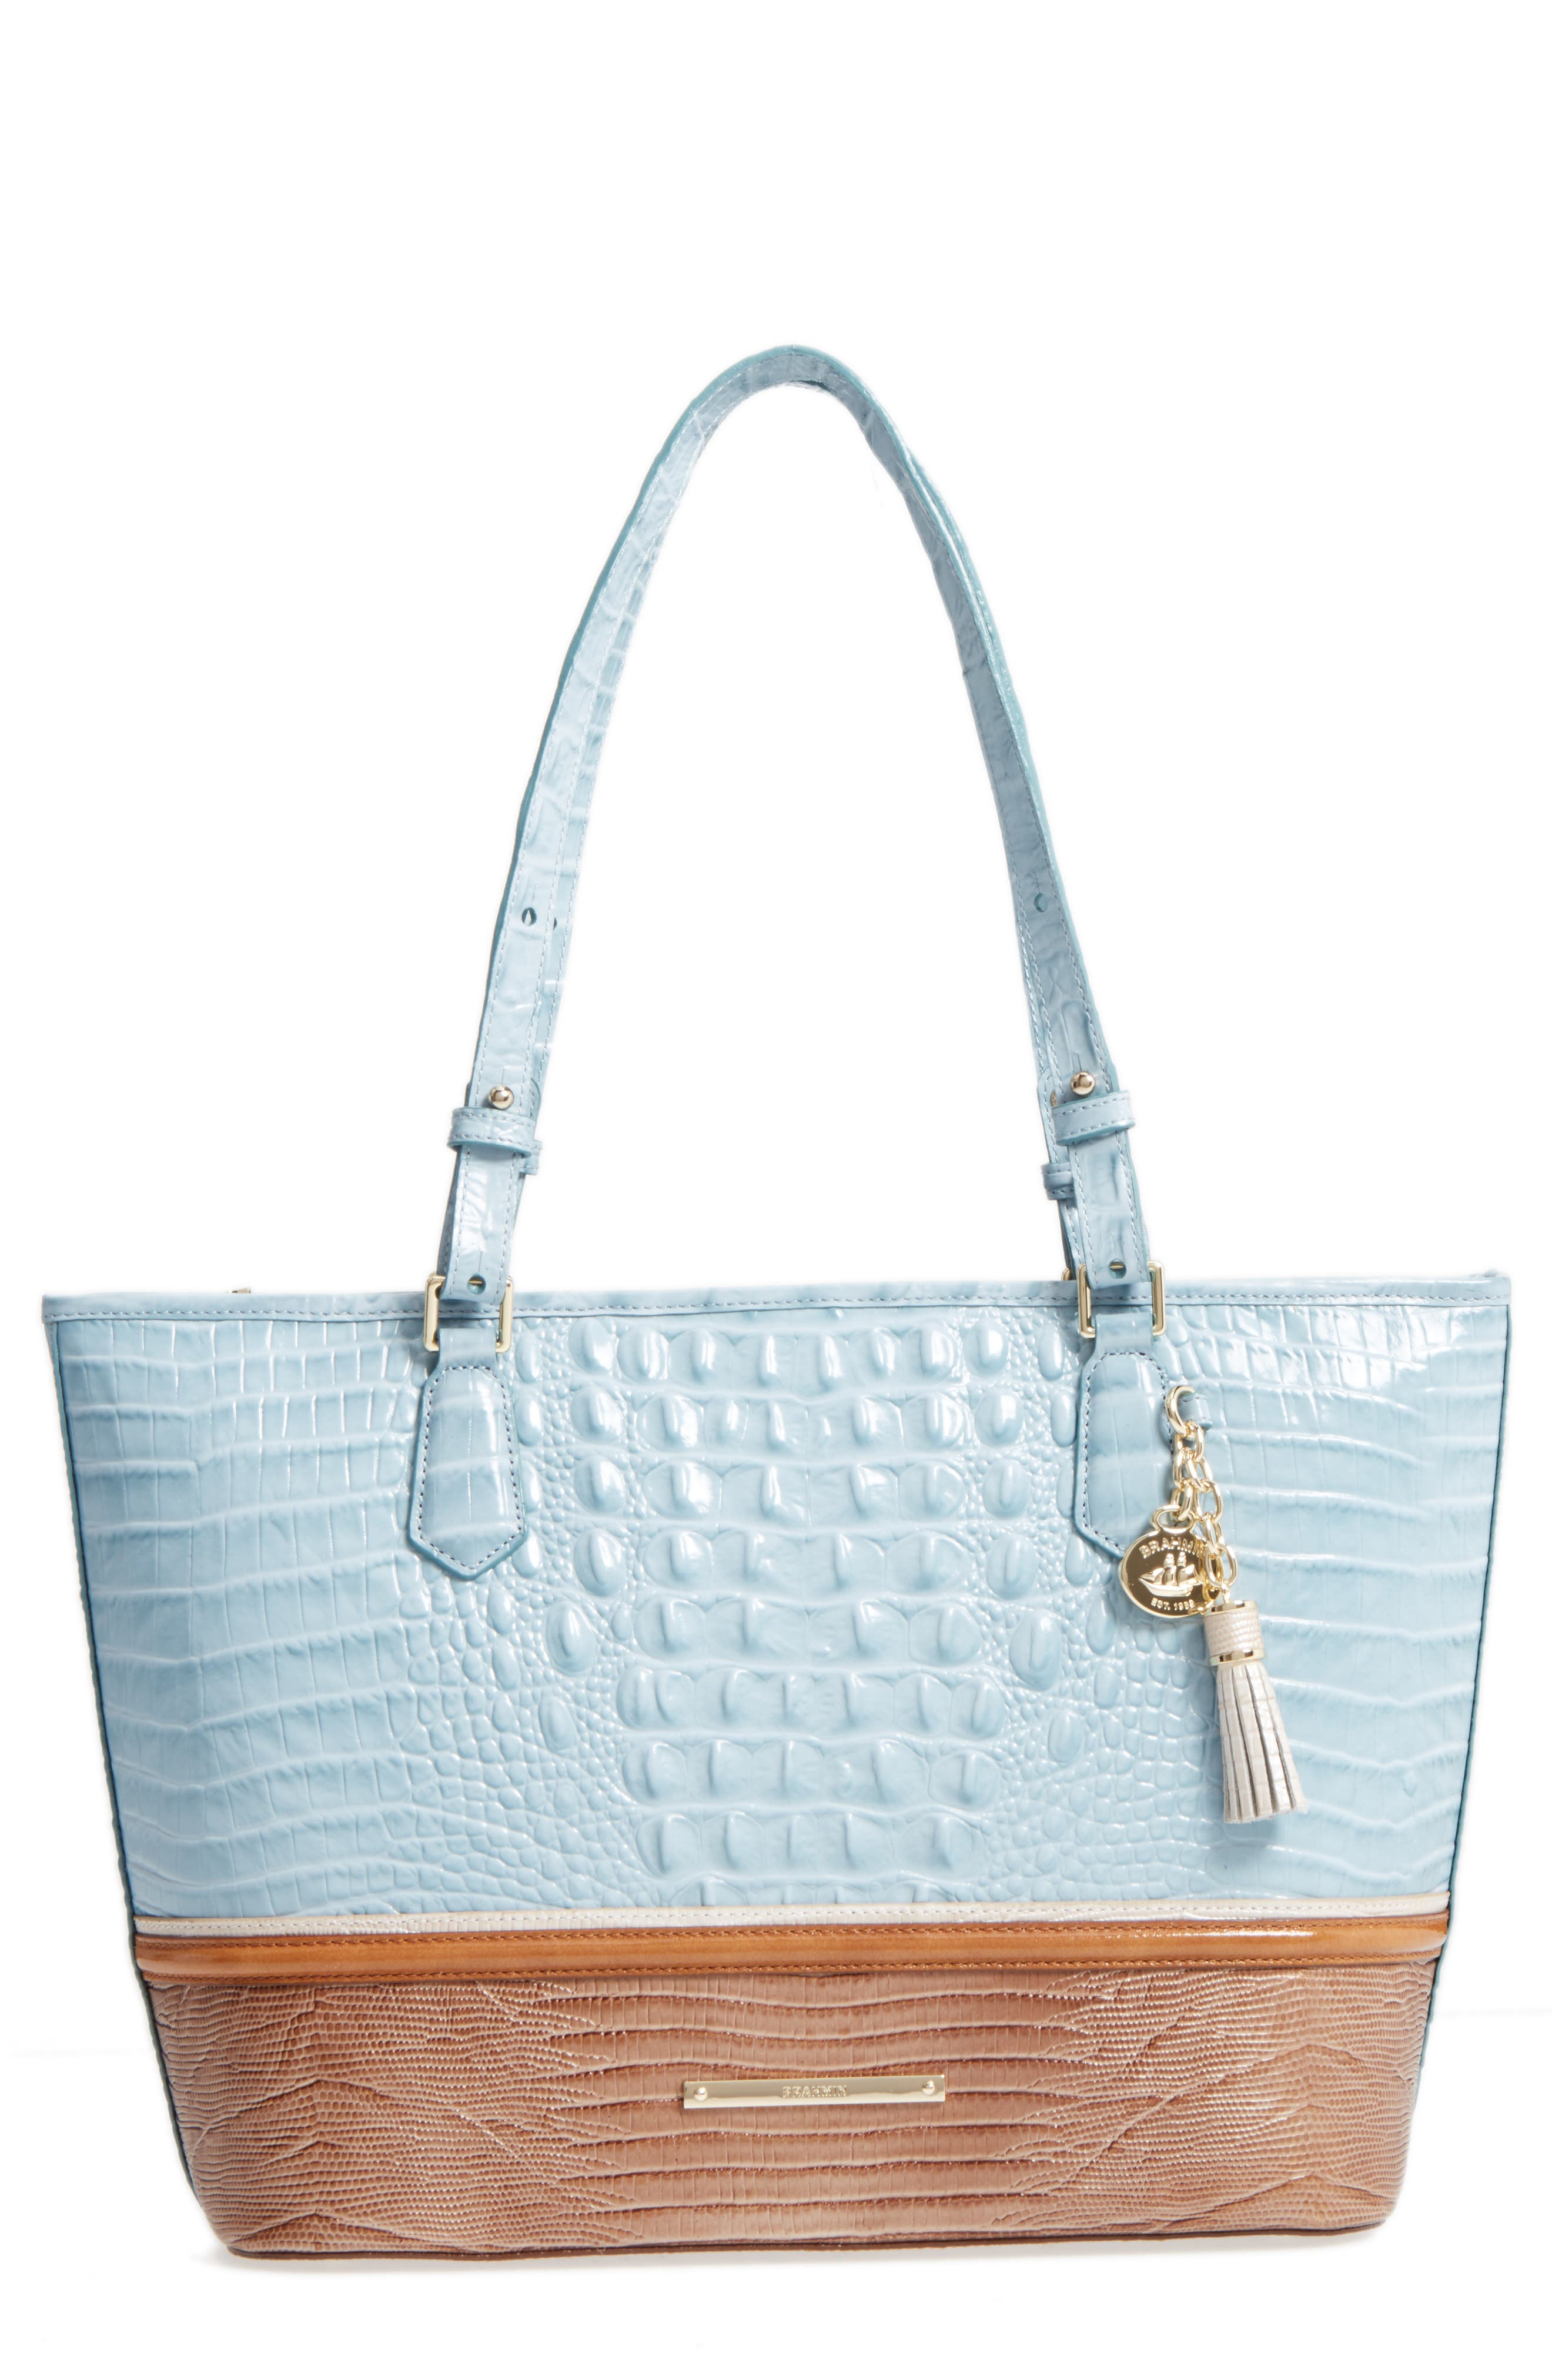 Medium Asher Leather Tote,                         Main,                         color, Sky